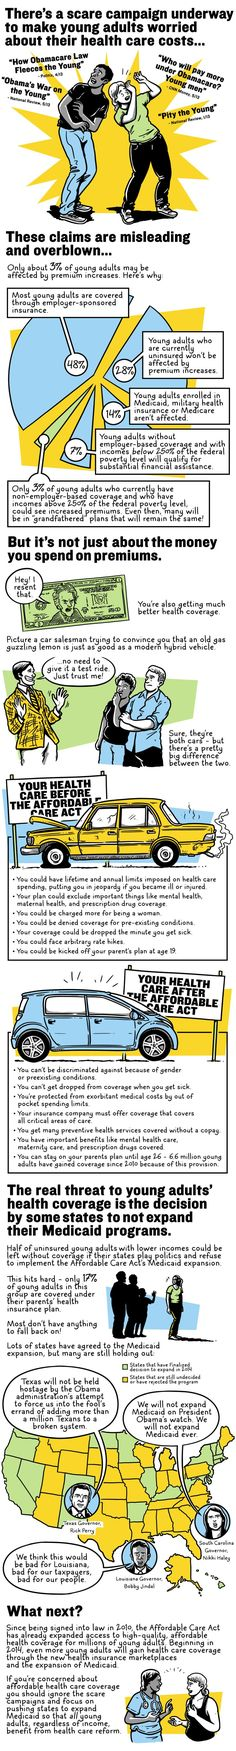 If You're Young, This Is The Only Obamacare Infographic You Need. I Obamadare You To Click On It.